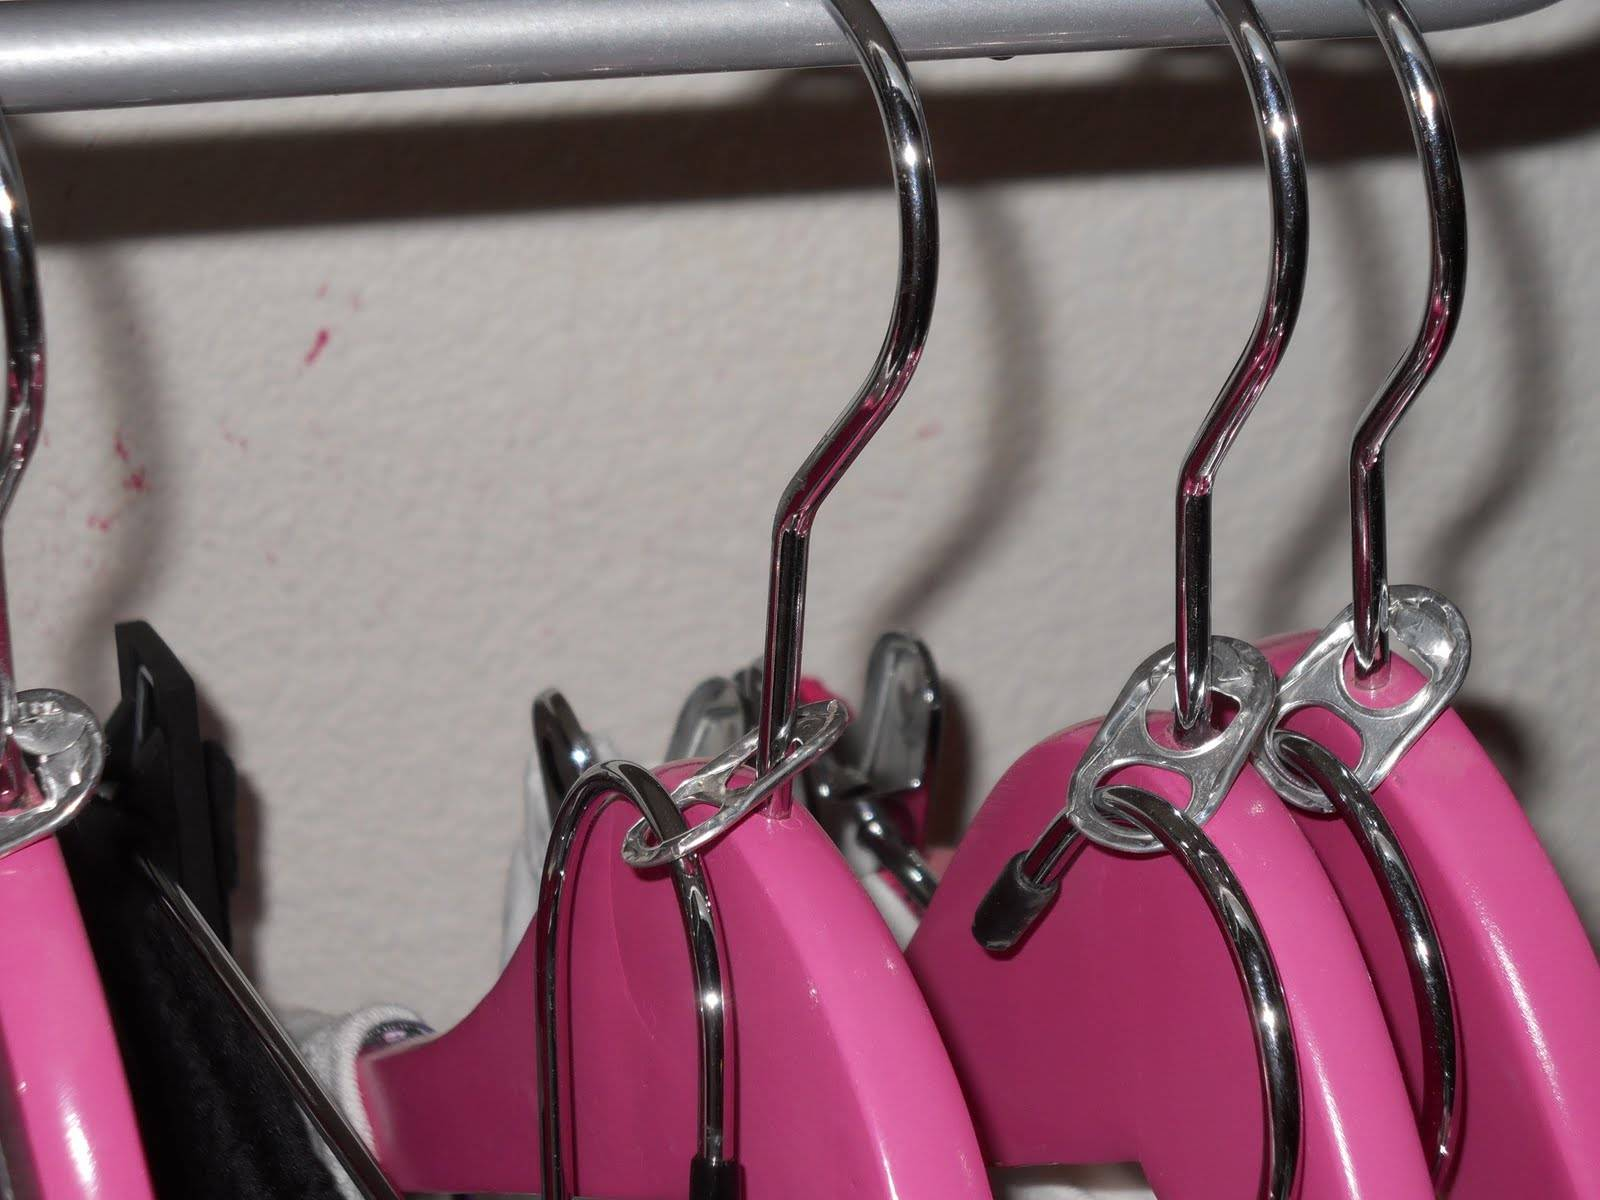 35+ Useful Clothing Hacks Every Woman Should Know --> DIY double clothes hangers with pop tabs